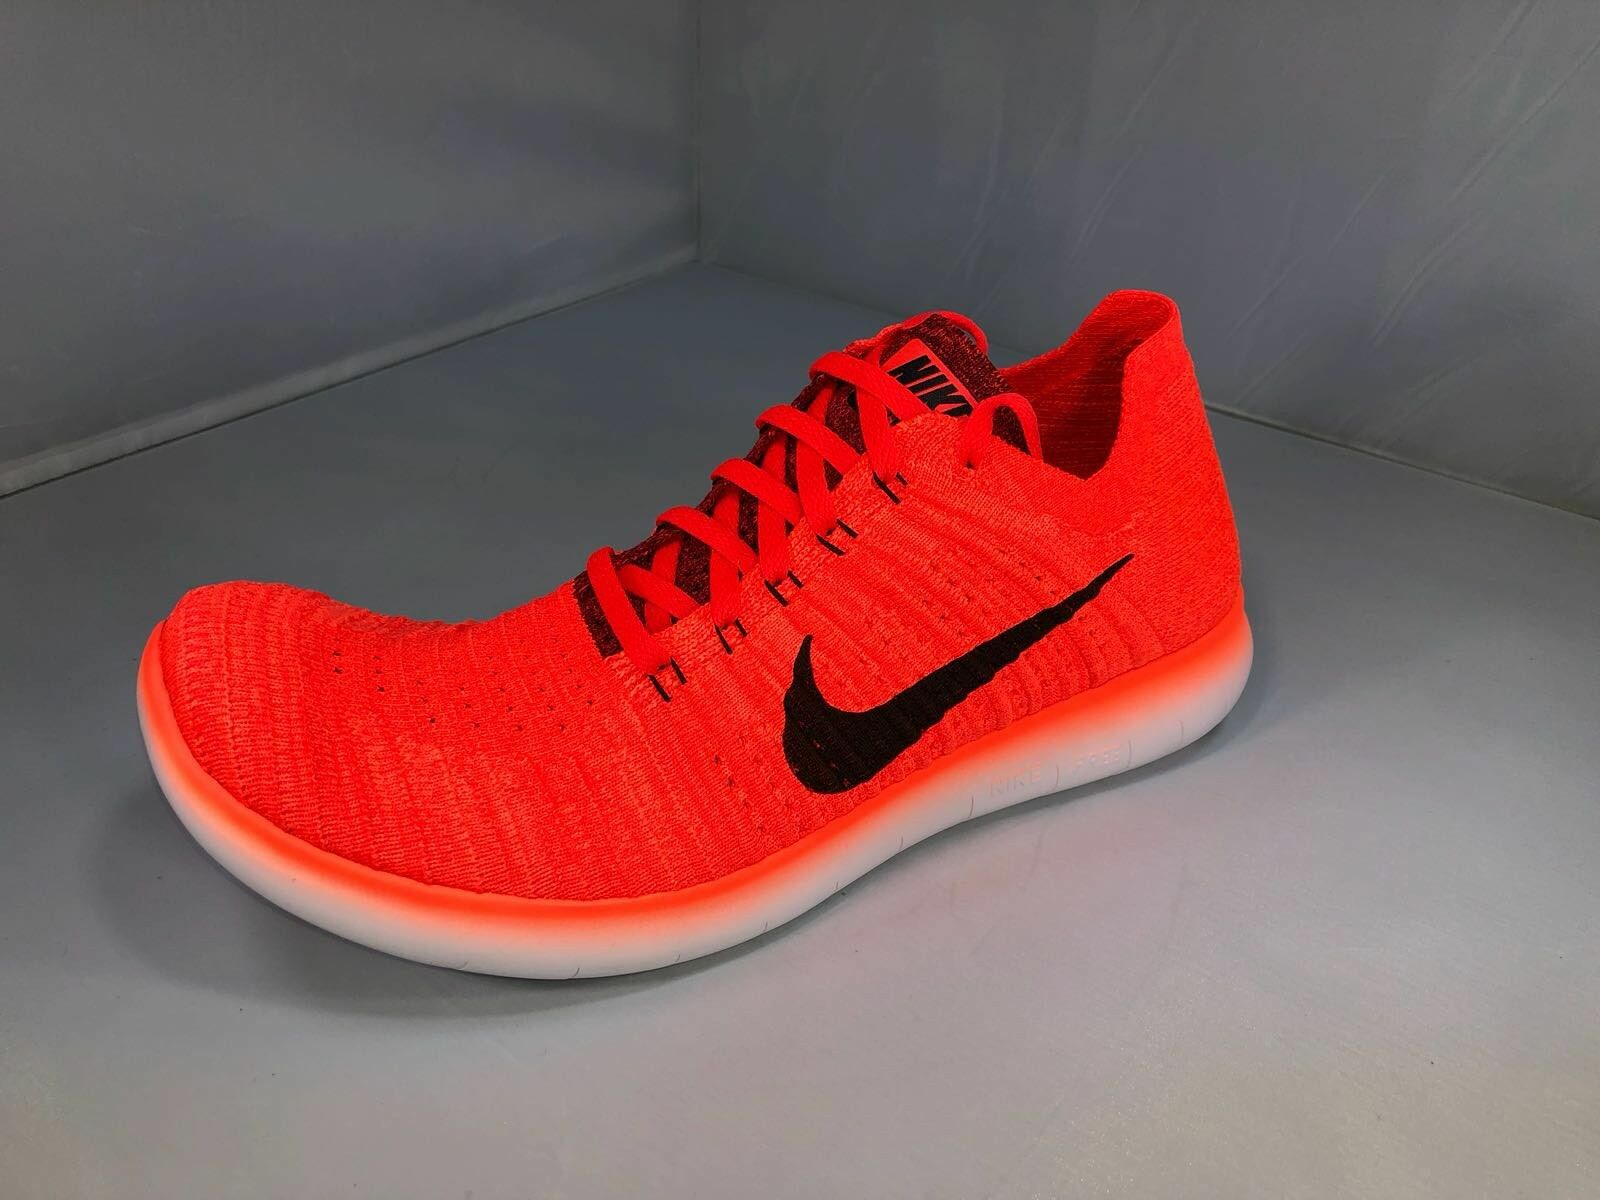 d9b2ee7696912 Men s Men s Men s NIKE Free RN Flyknit RUNNING Shoes bright crimson (831069  600) Size